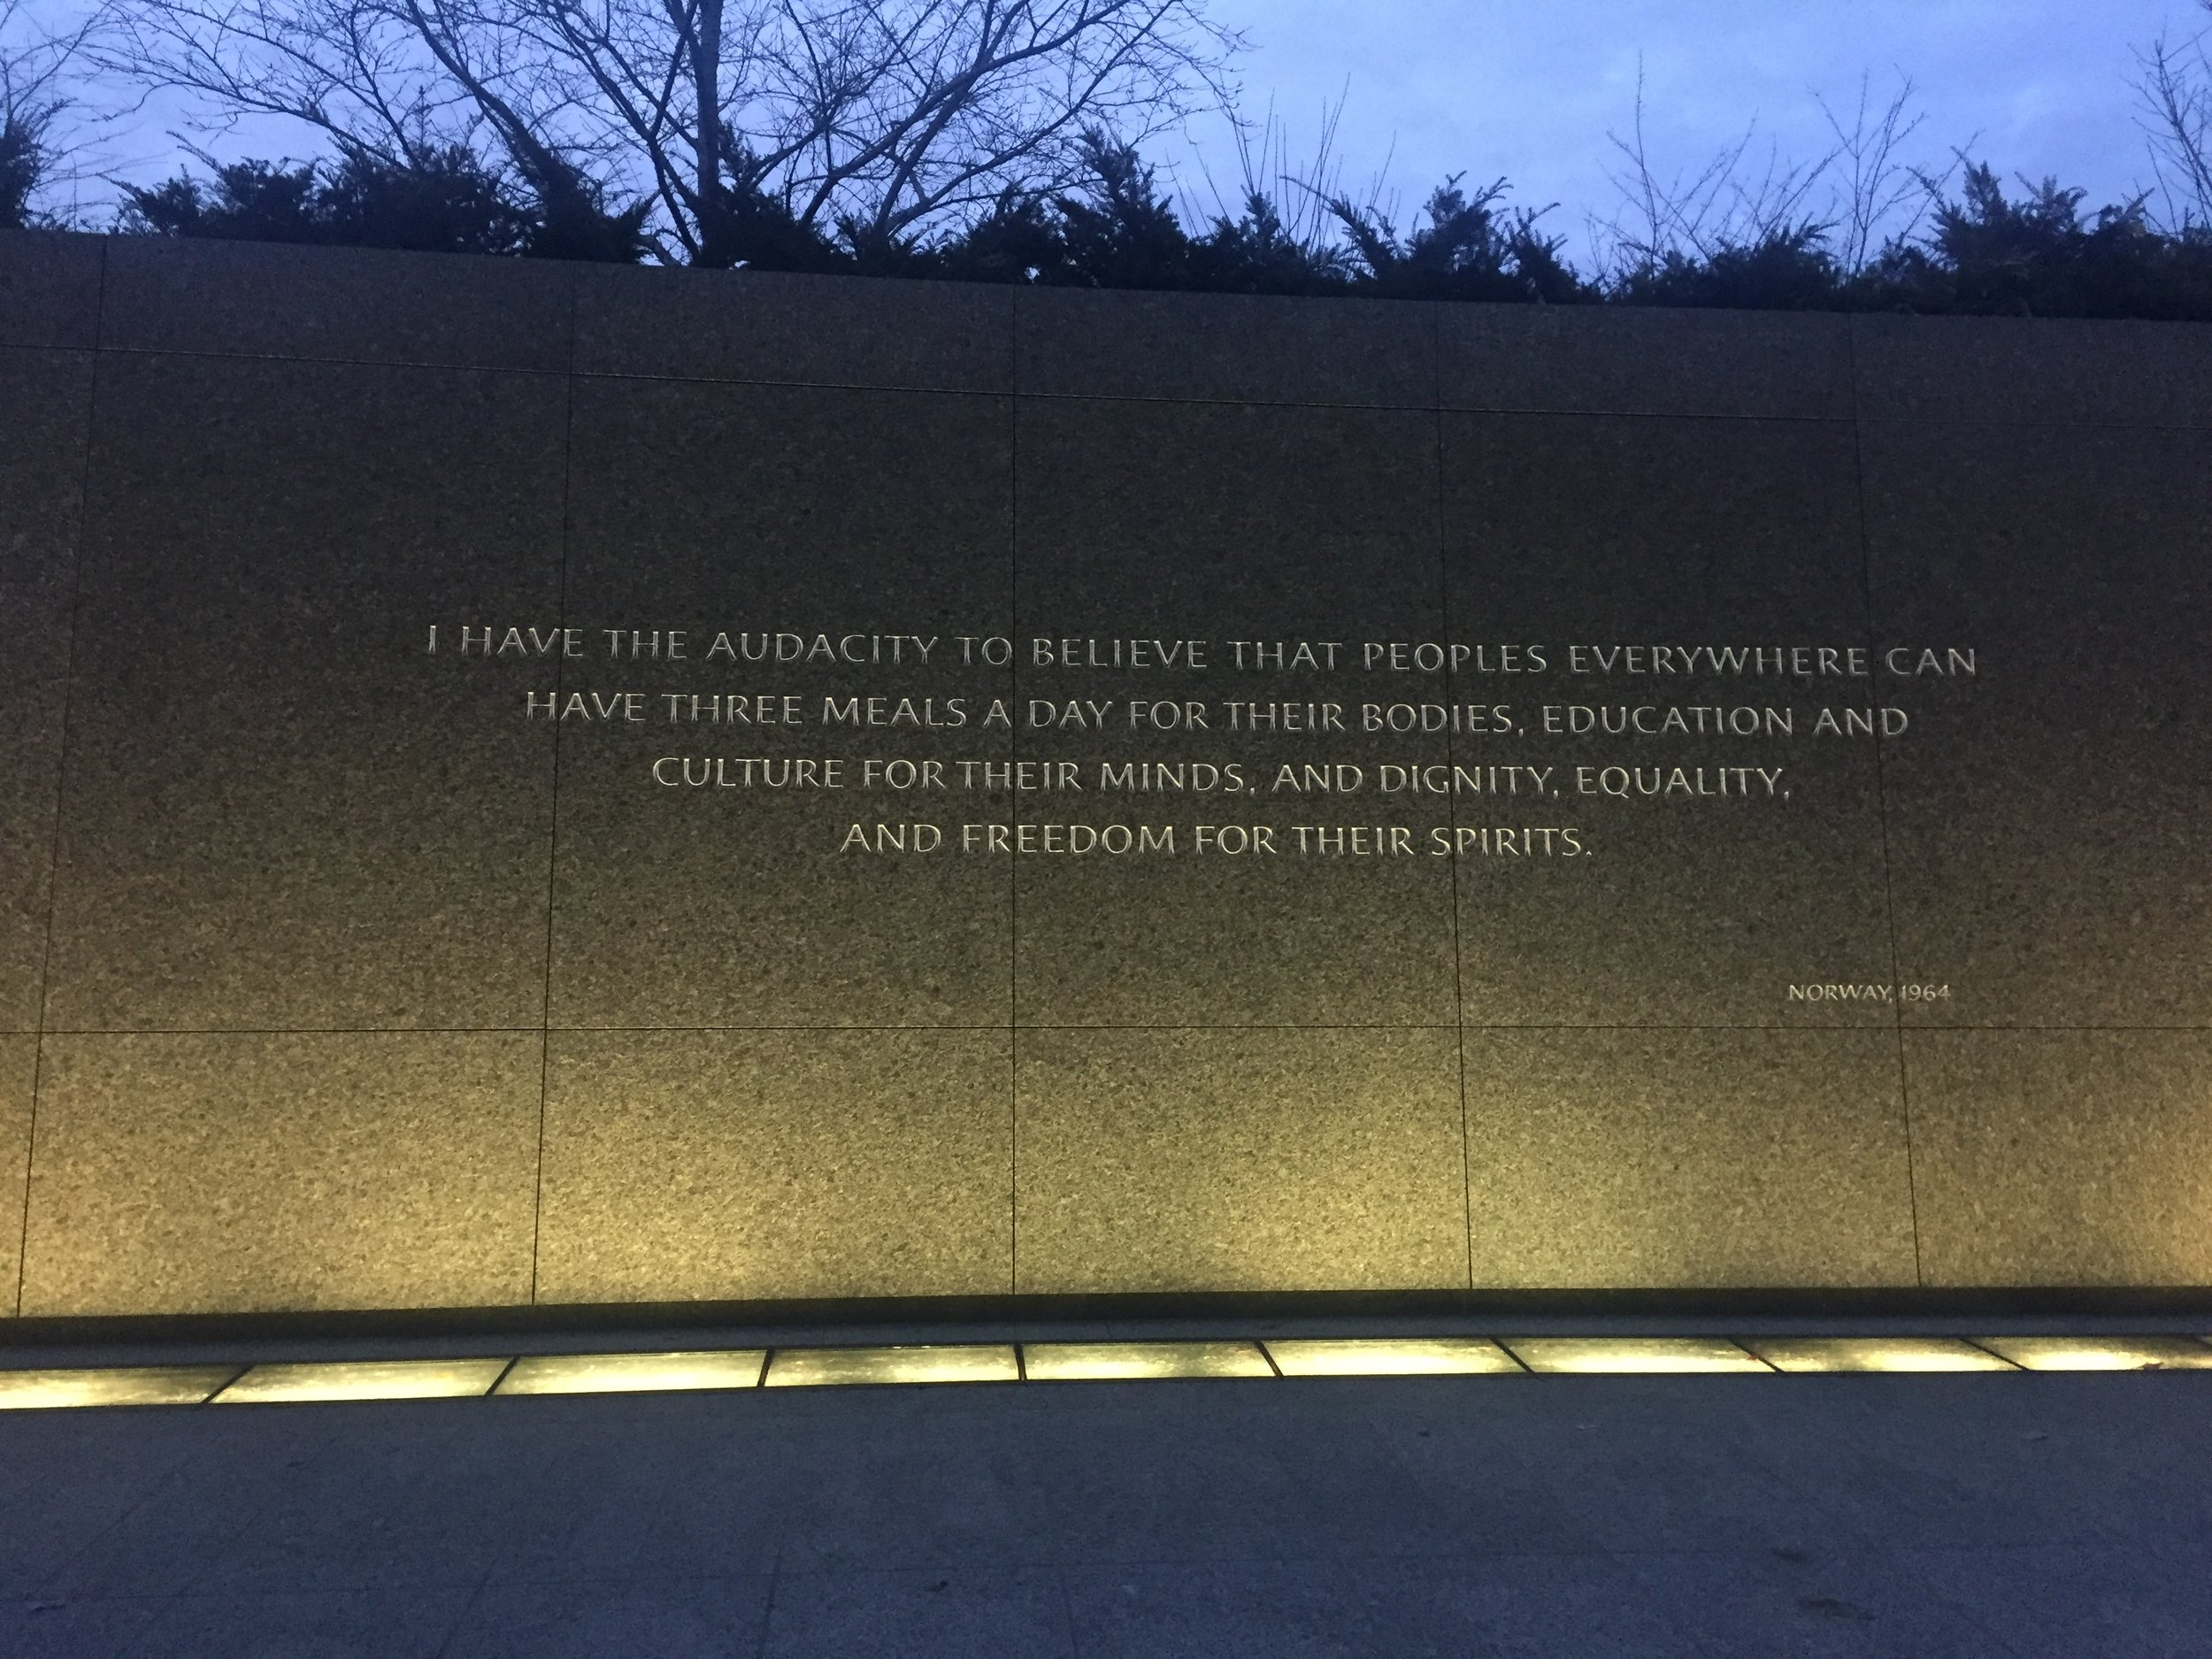 Photography by Kaiulani Houston, taken January 15, 2017 at the Dr. Martin Luther King Jr. Monument in Washington D.C.